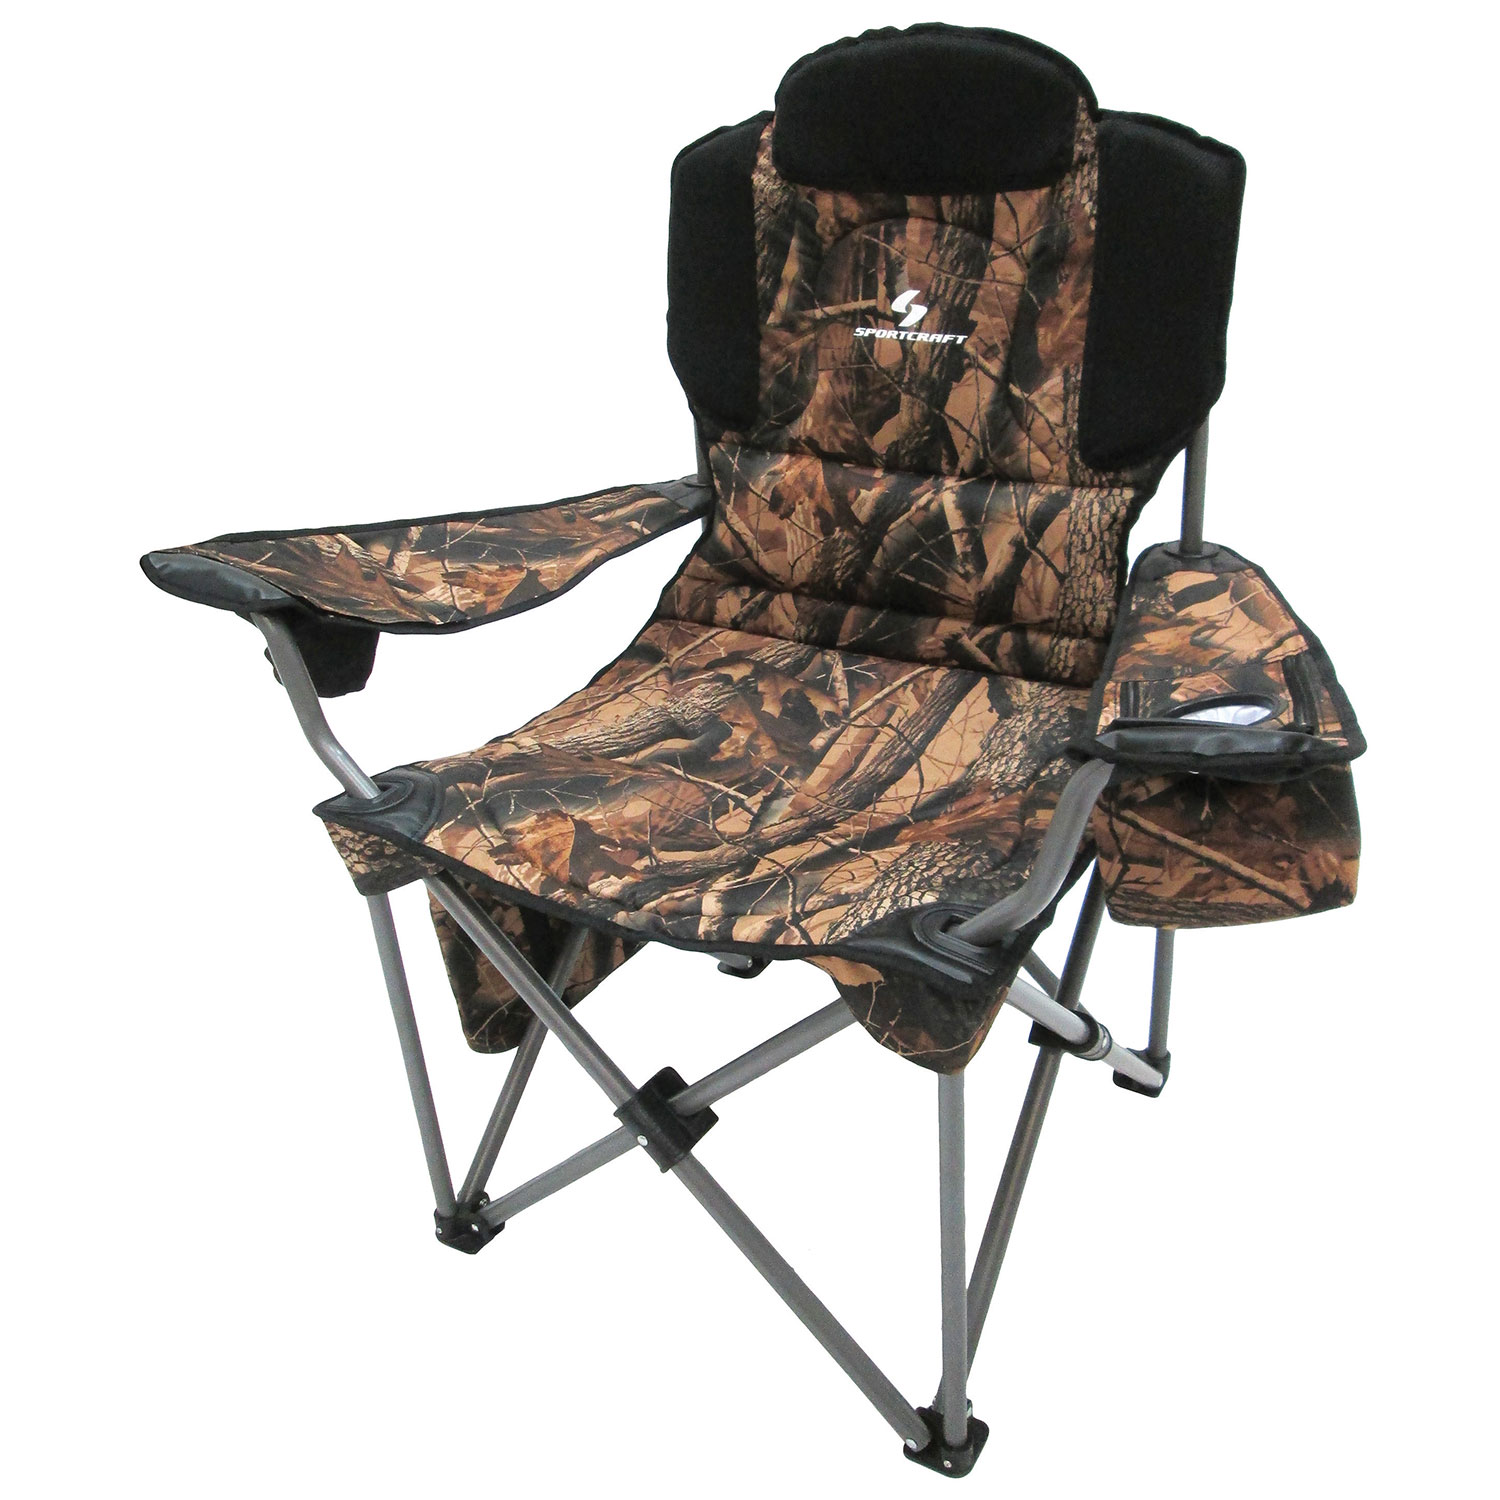 Sportcraft Huntsman Deluxe Oversized Heavy Duty Folding Chair